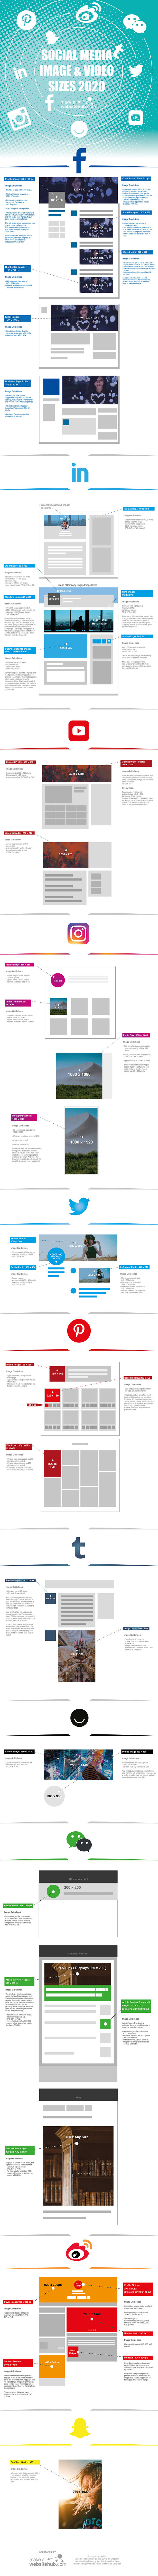 Social Media Cheat Sheet voor 2020